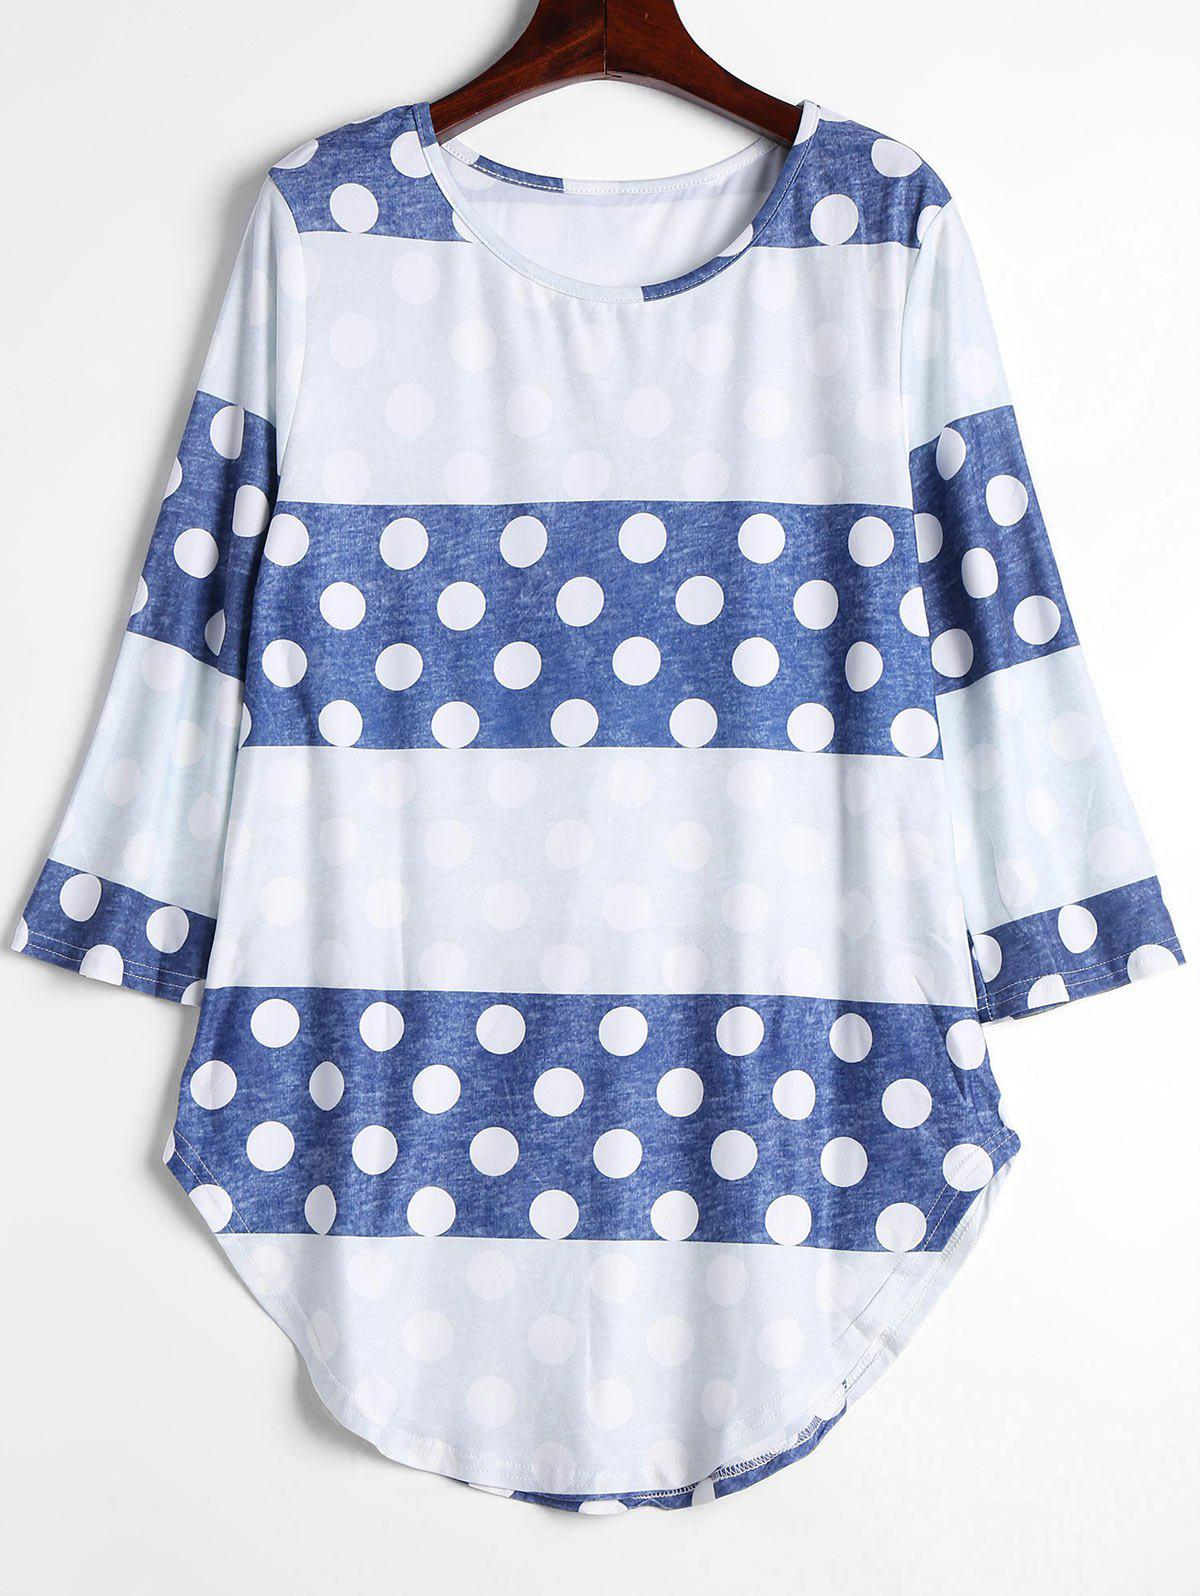 DOT PATTERN S Contrast Polka Dot Long Tee